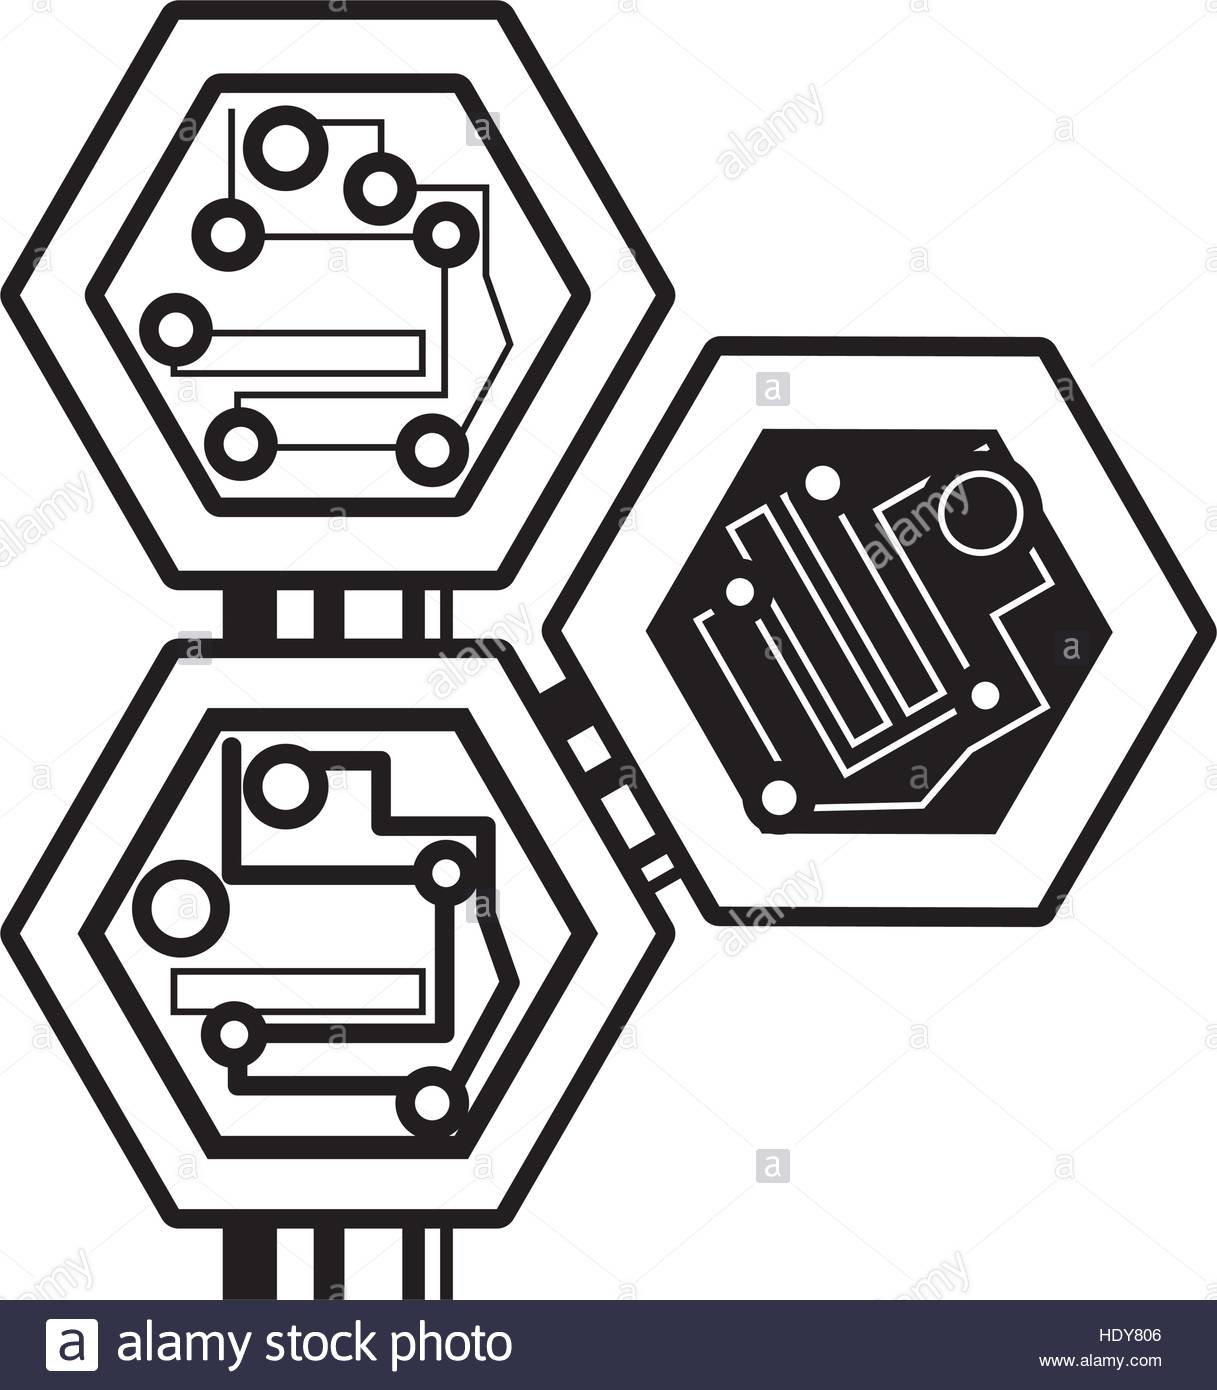 Computer Symbol Drawing At Free For Personal Use Abstract Background With Old Circuit Board 1217x1390 Hexagon Electronic Component Linear Stock Vector